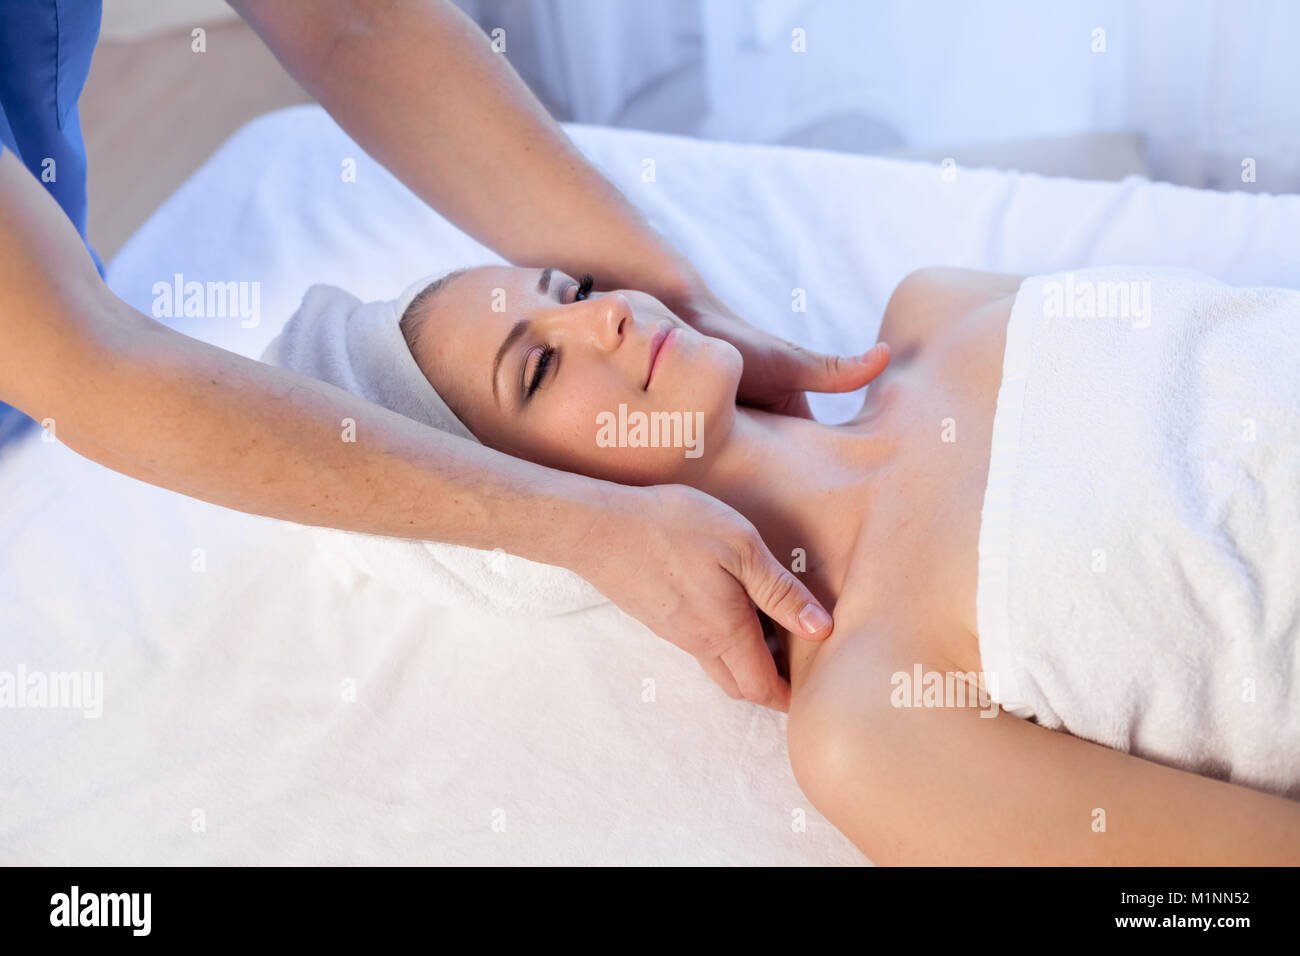 doctor cosmetologist doing facial massage girl spa treatments - Stock Image